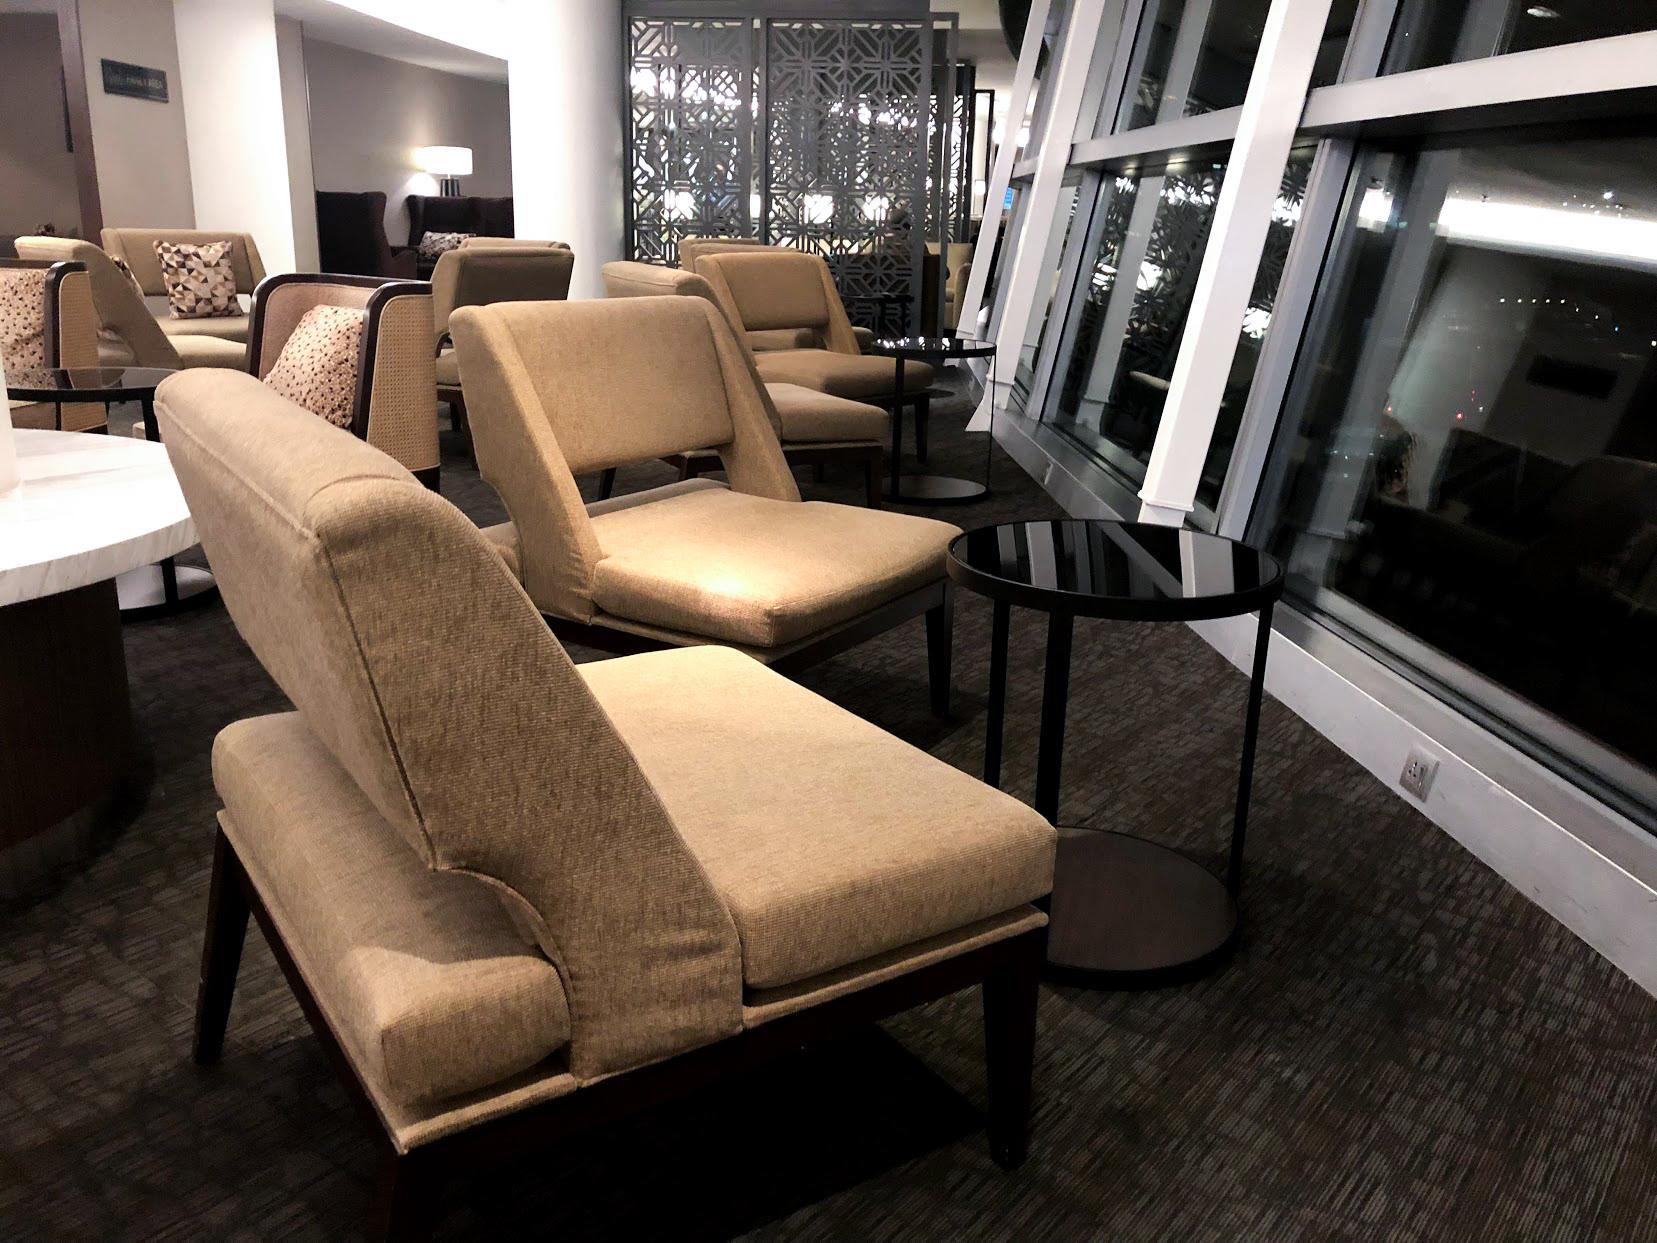 Malaysia Airlines Domestic Golden Lounge Kuala Lumpur seating area with tarmac view